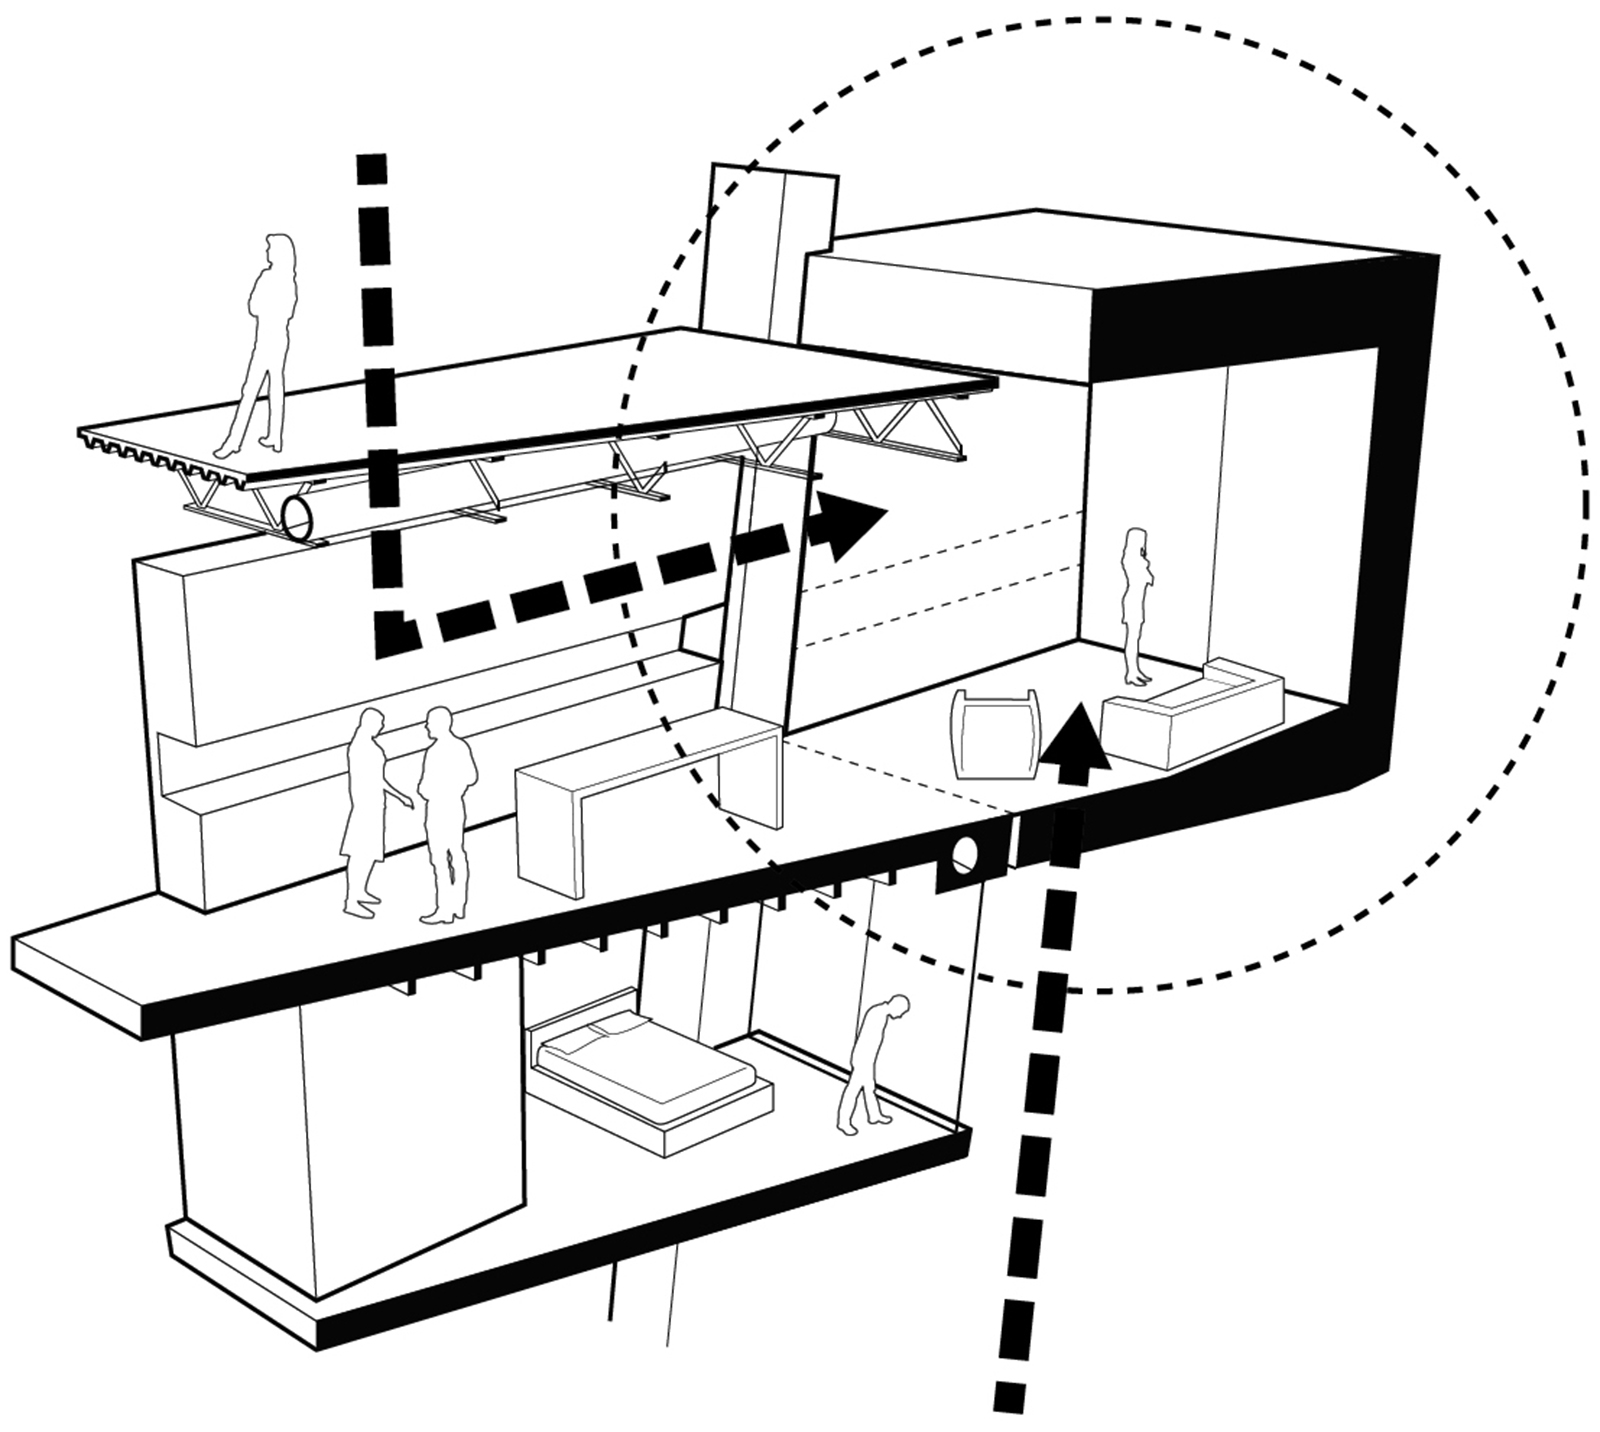 Section perspective diagram of interaction with the CART moving room lift that extends the main living space